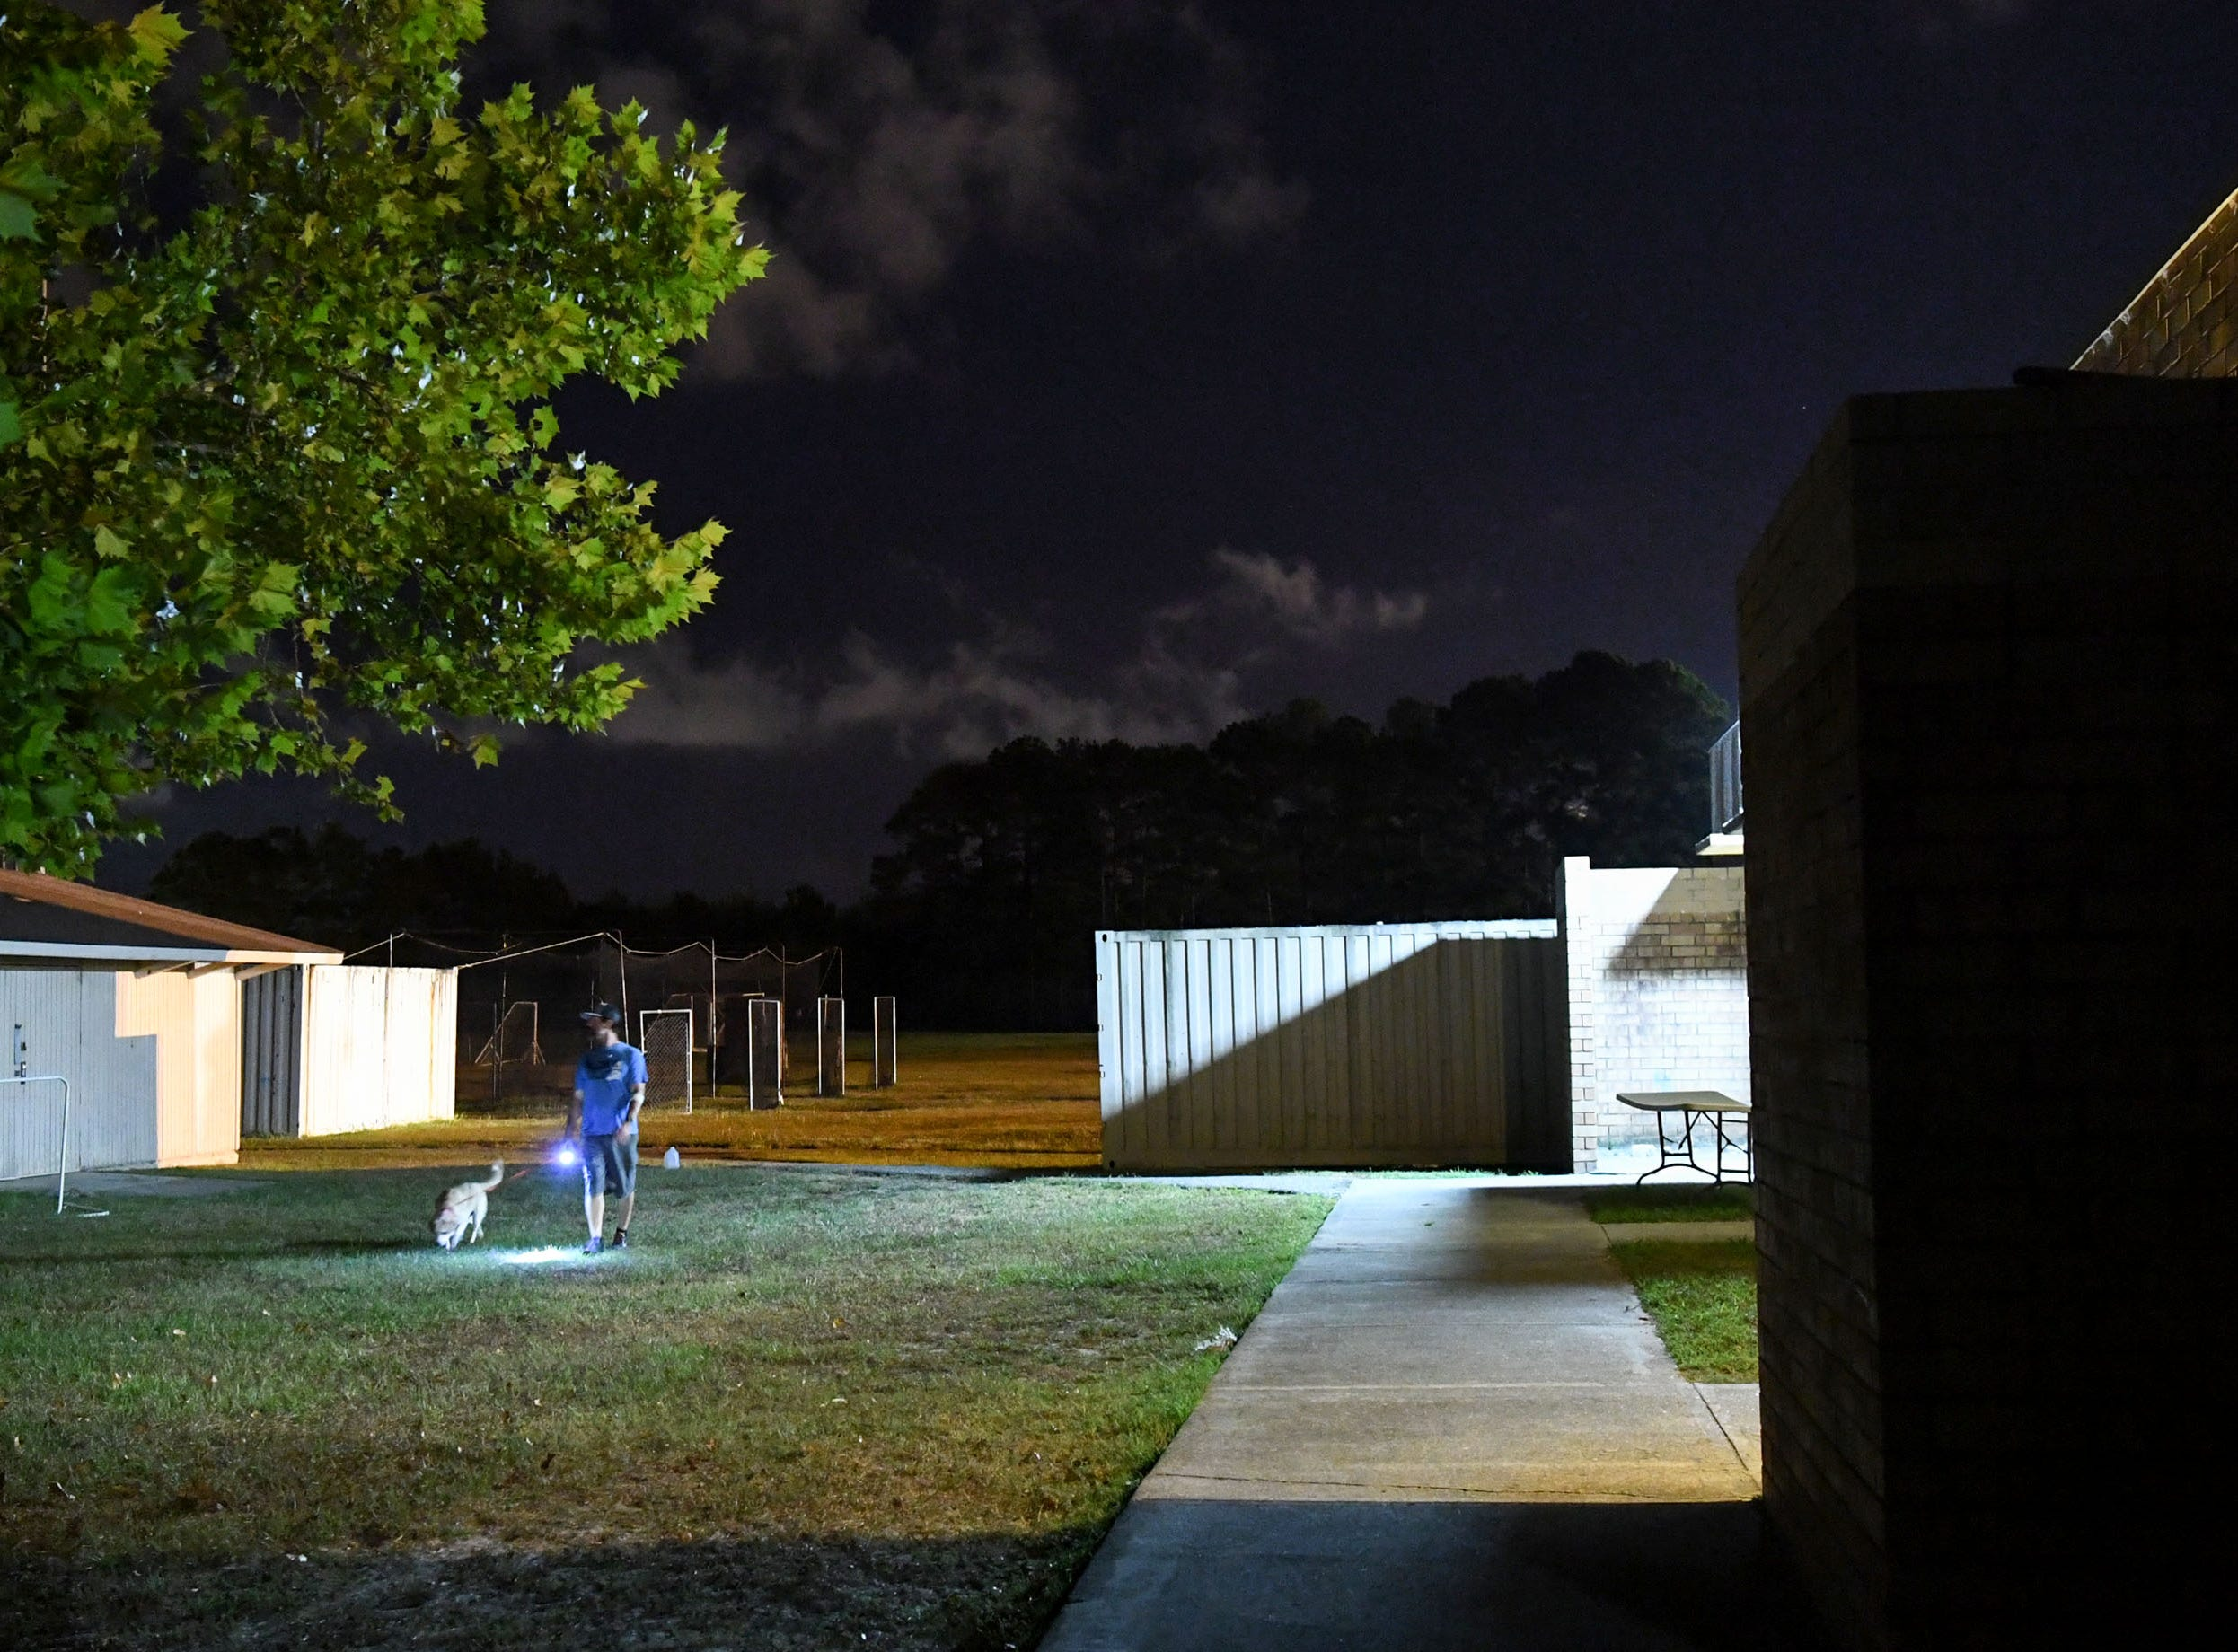 Jameson McDermott, an employee with New Hanover County, takes a dog for a walk at the county emergency shelter held at Trask Middle School in Wilmington, North Carolina on Tuesday, September 11, 2018. Hurricane Florence is expected to make landfall in Wilmington Thursday night. (Ken Ruinard / Greenville News / Gannett USA Today Network / 2018 )